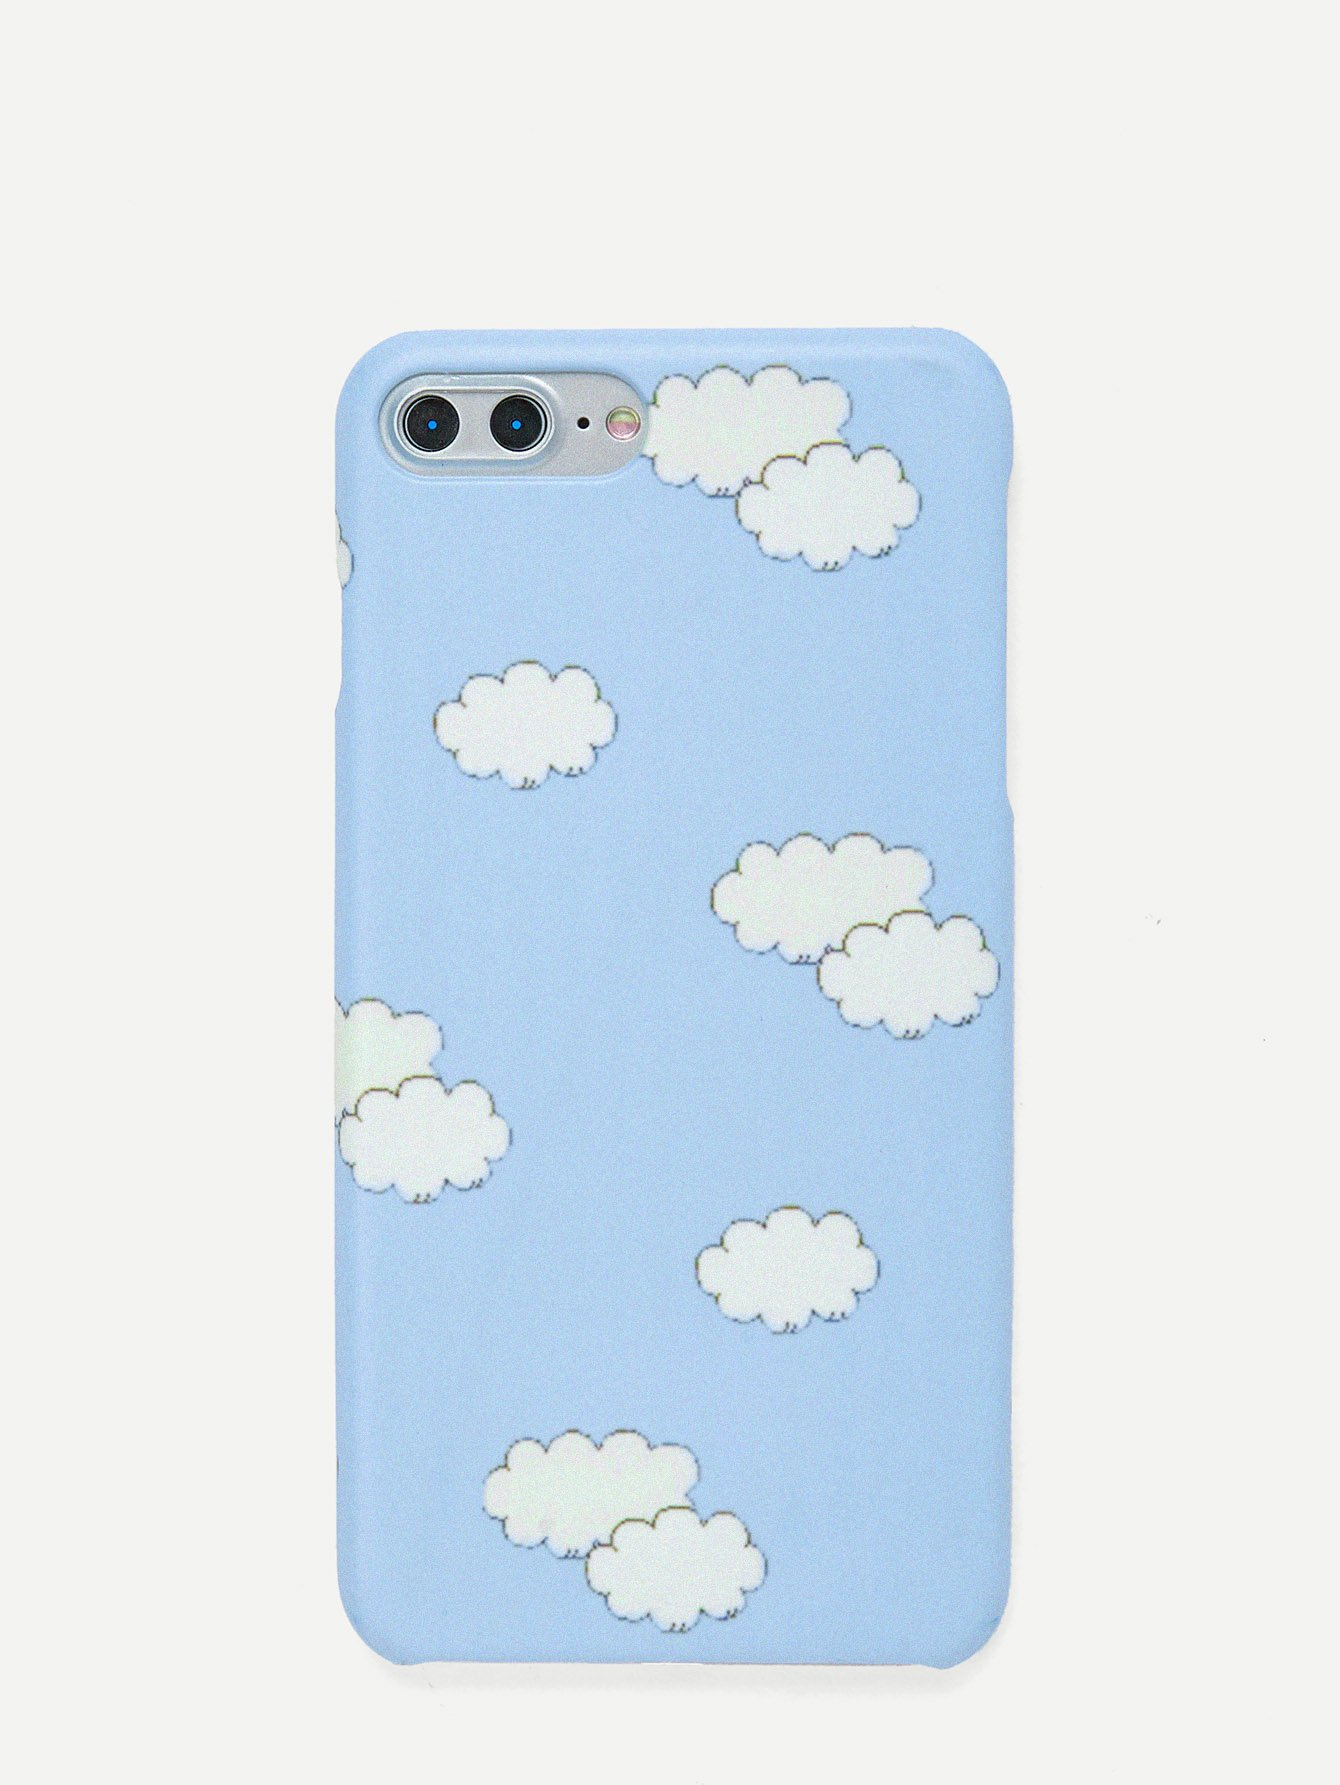 Clouds iPhone Case clouds without rain